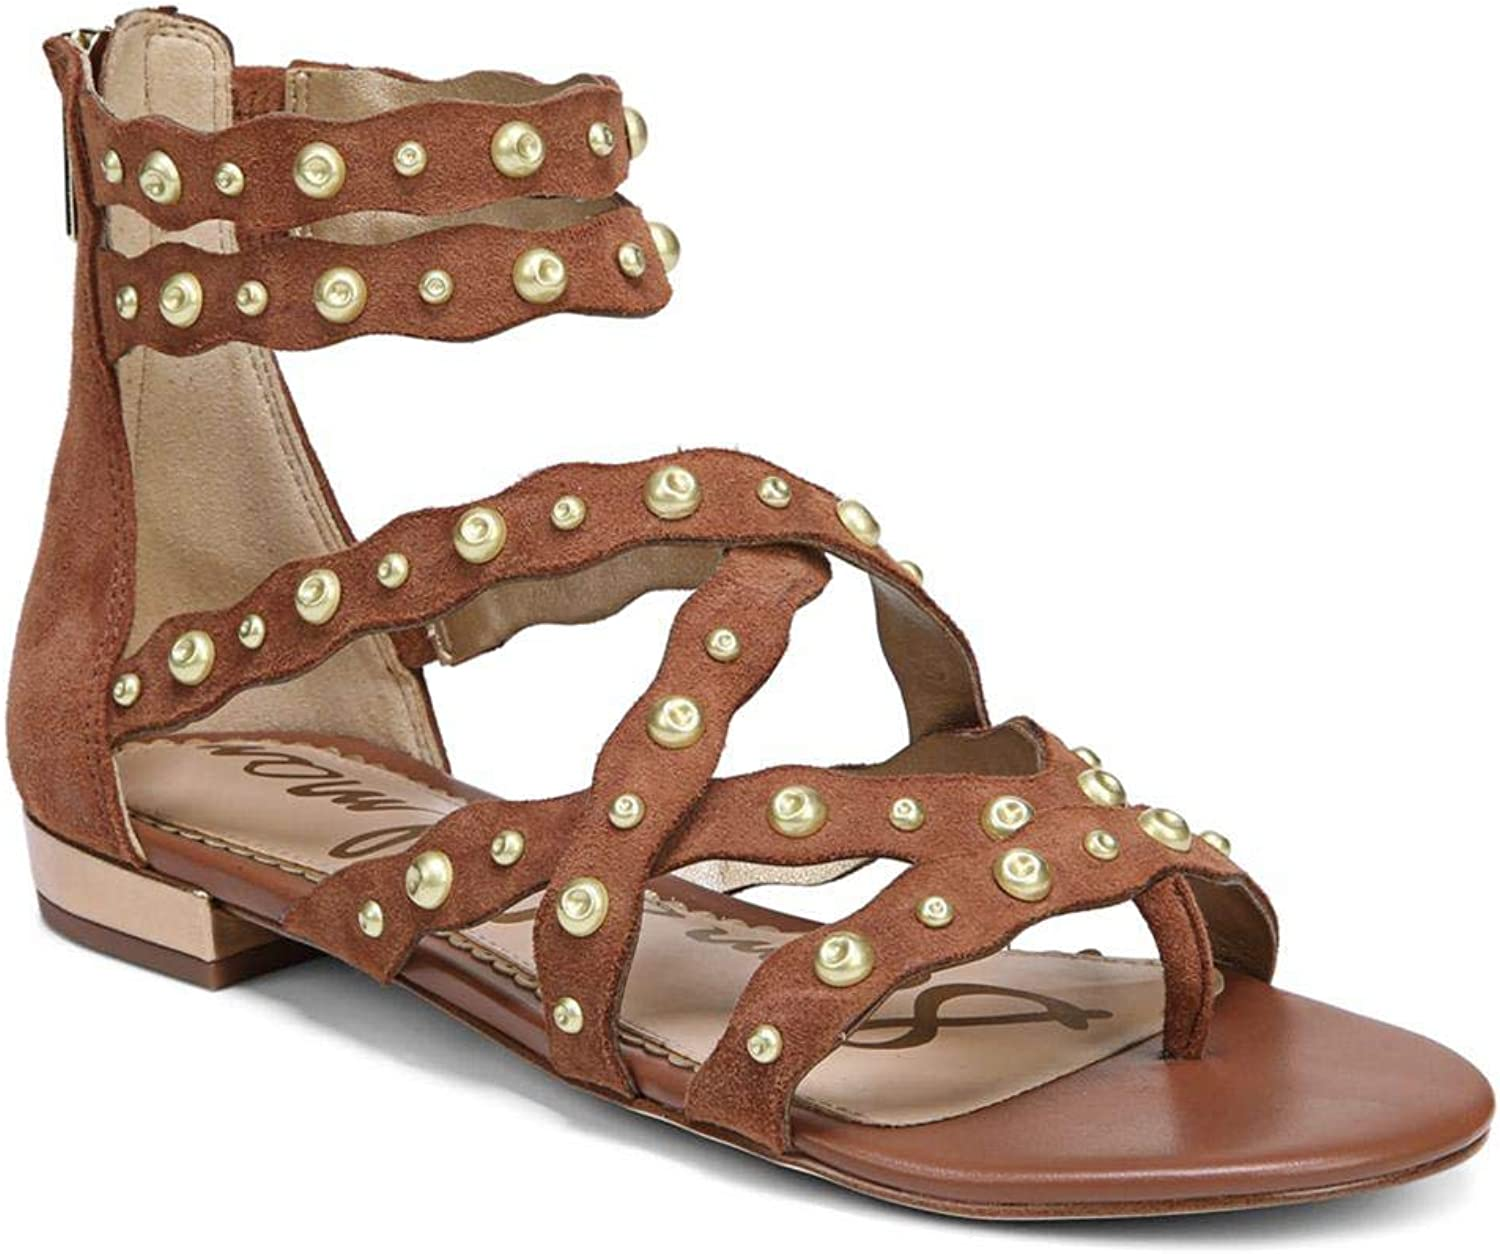 Sam Edelman Womens Daya Suede Open Toe Casual Gladiator Sandals